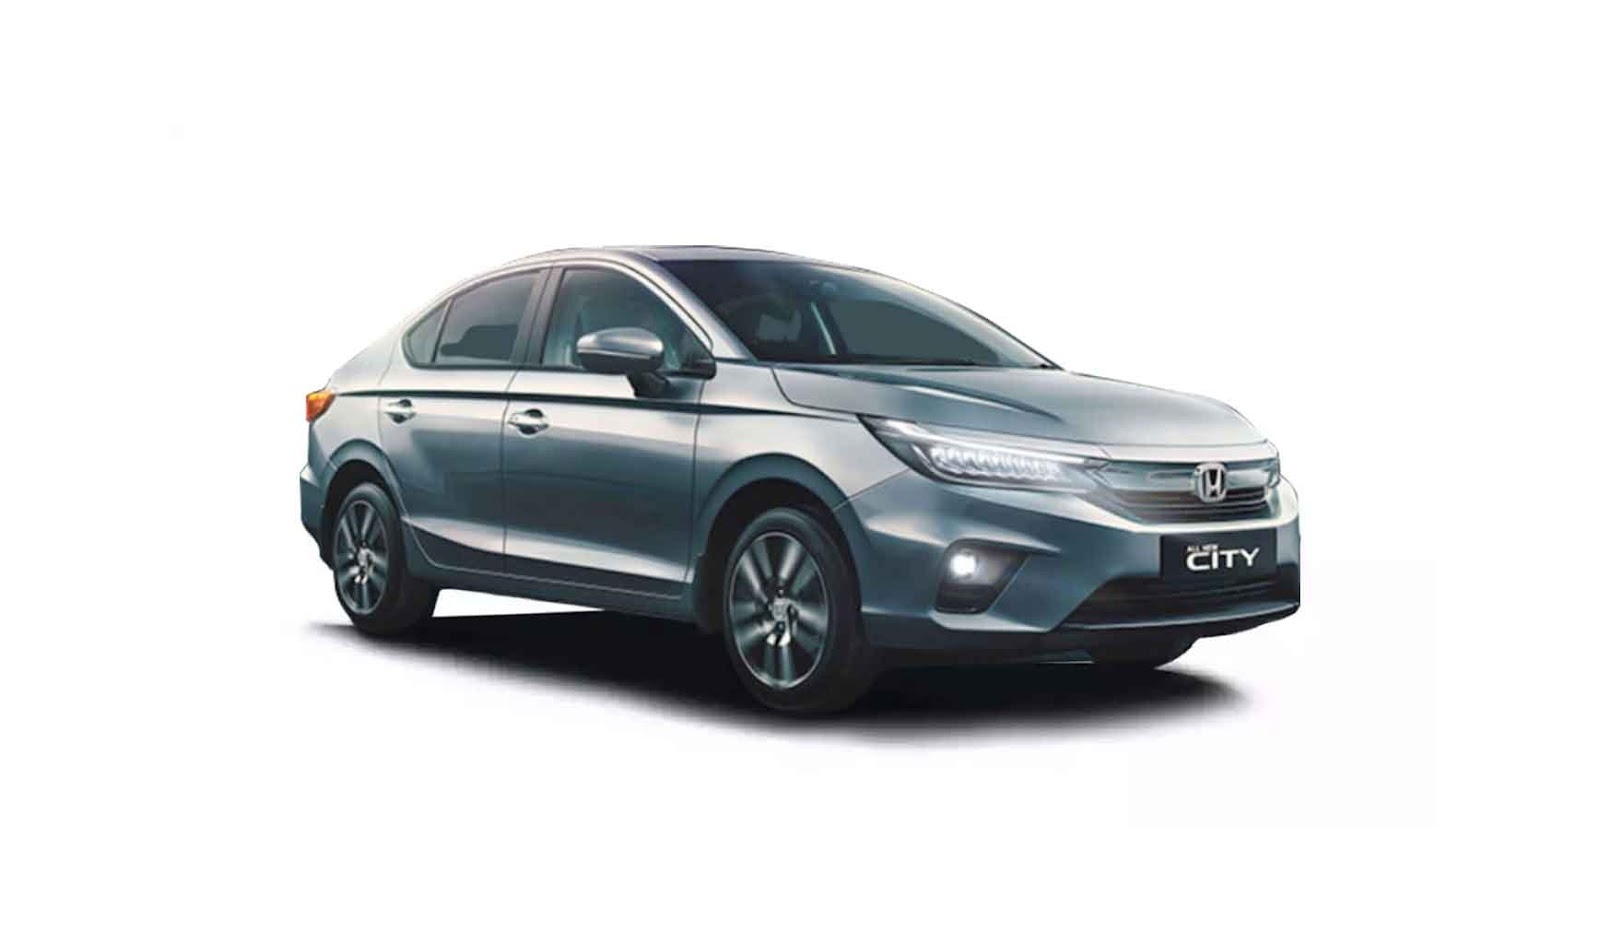 New Car Deals and Discount Offers - October 2020